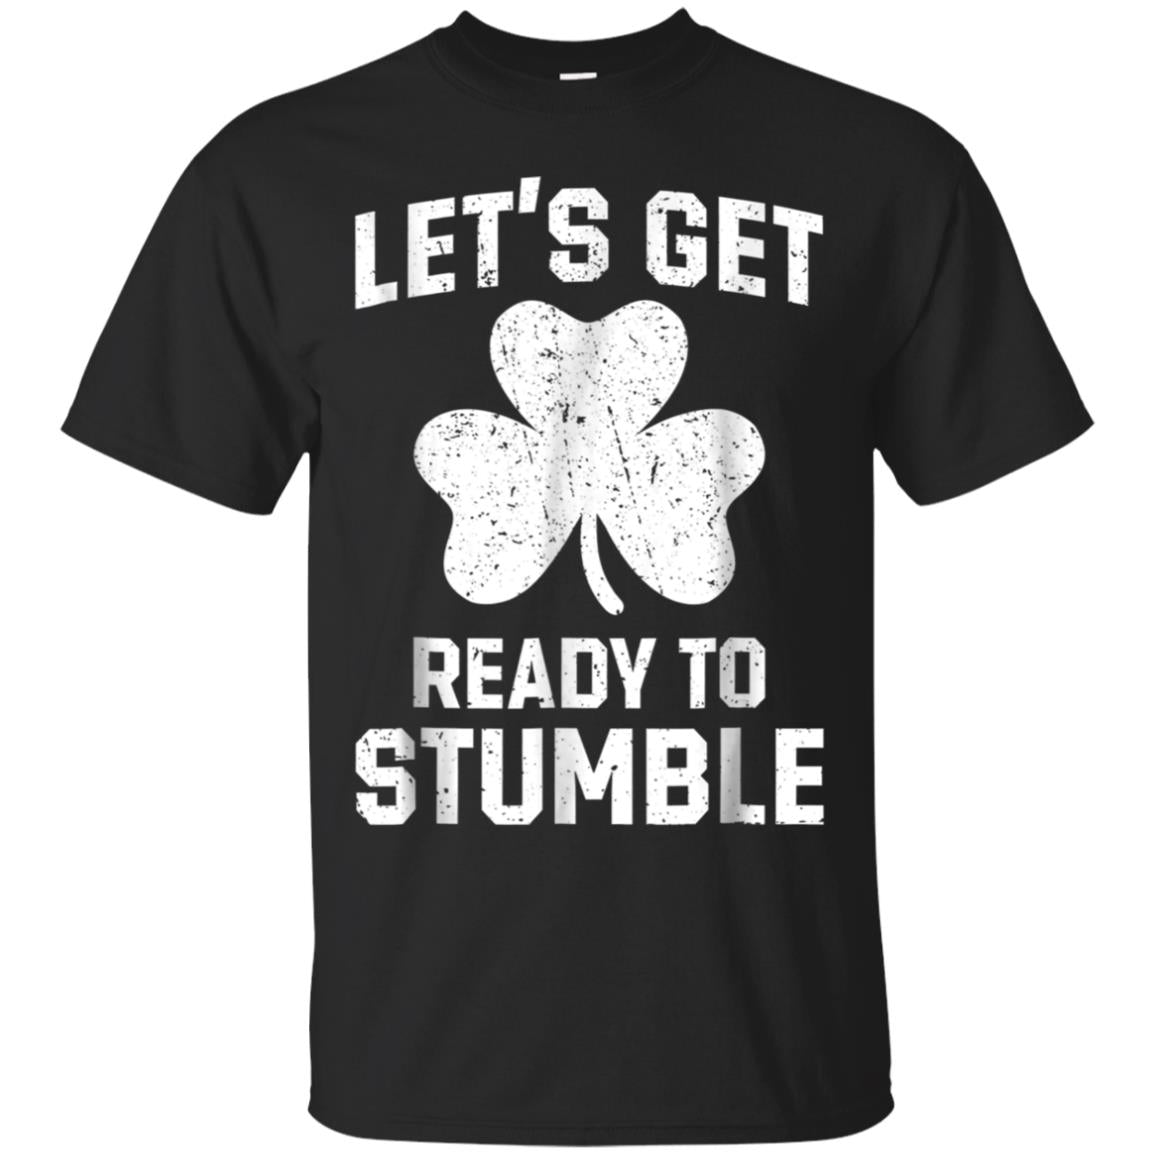 Let's Get Ready To Stumble Shirt Novelty St Patricks Day Tee 99promocode